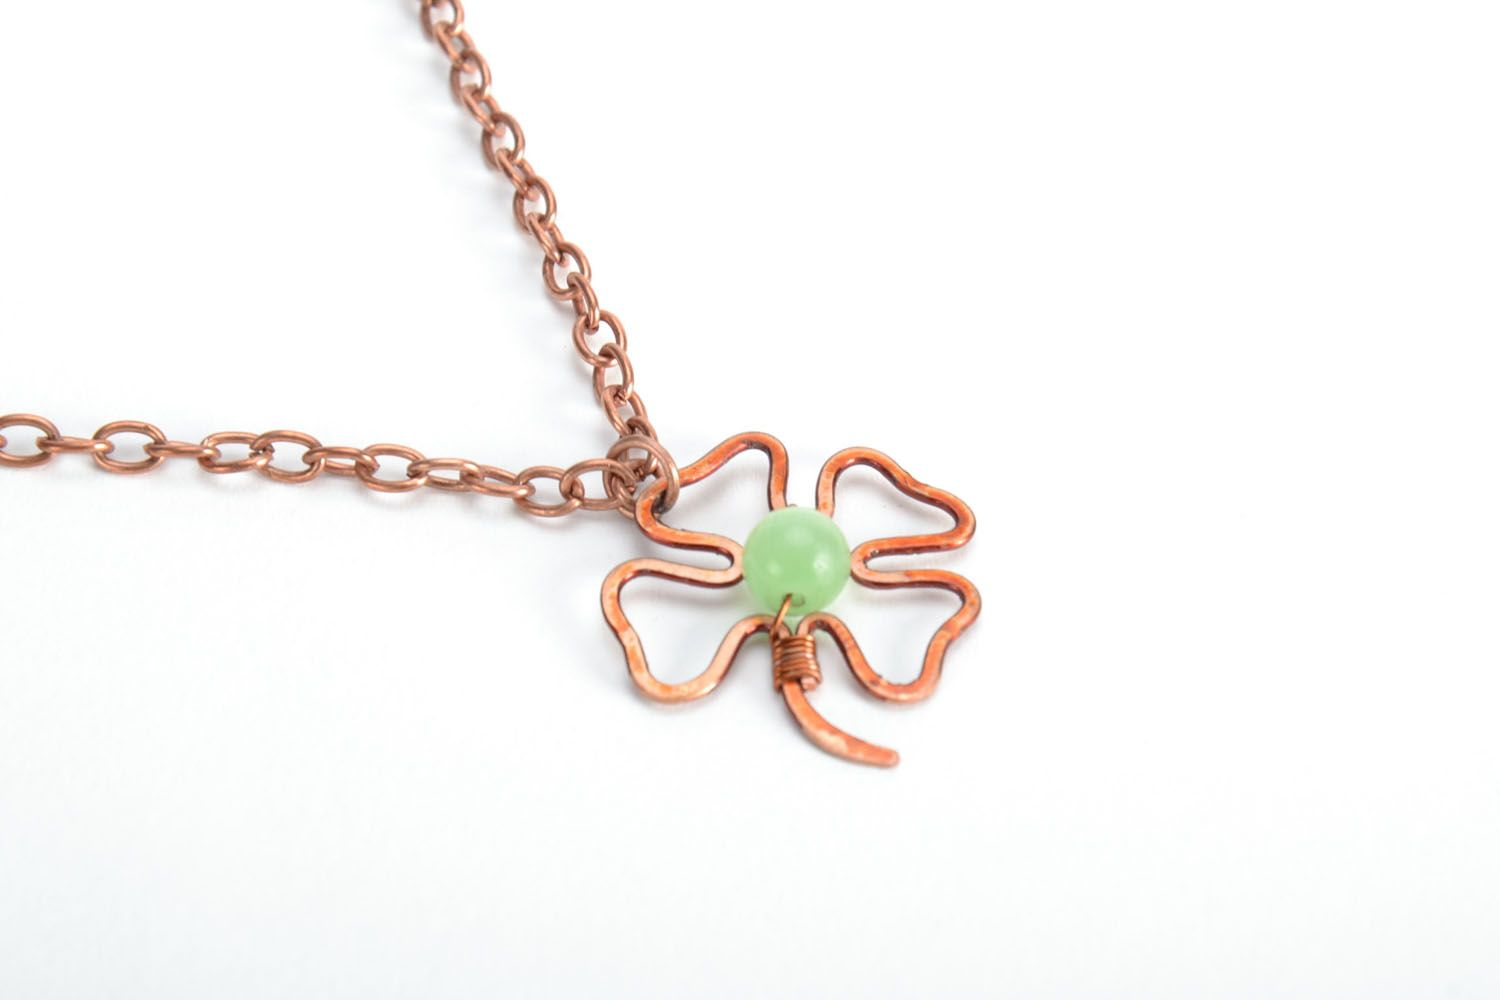 Copper pendant Clover photo 3